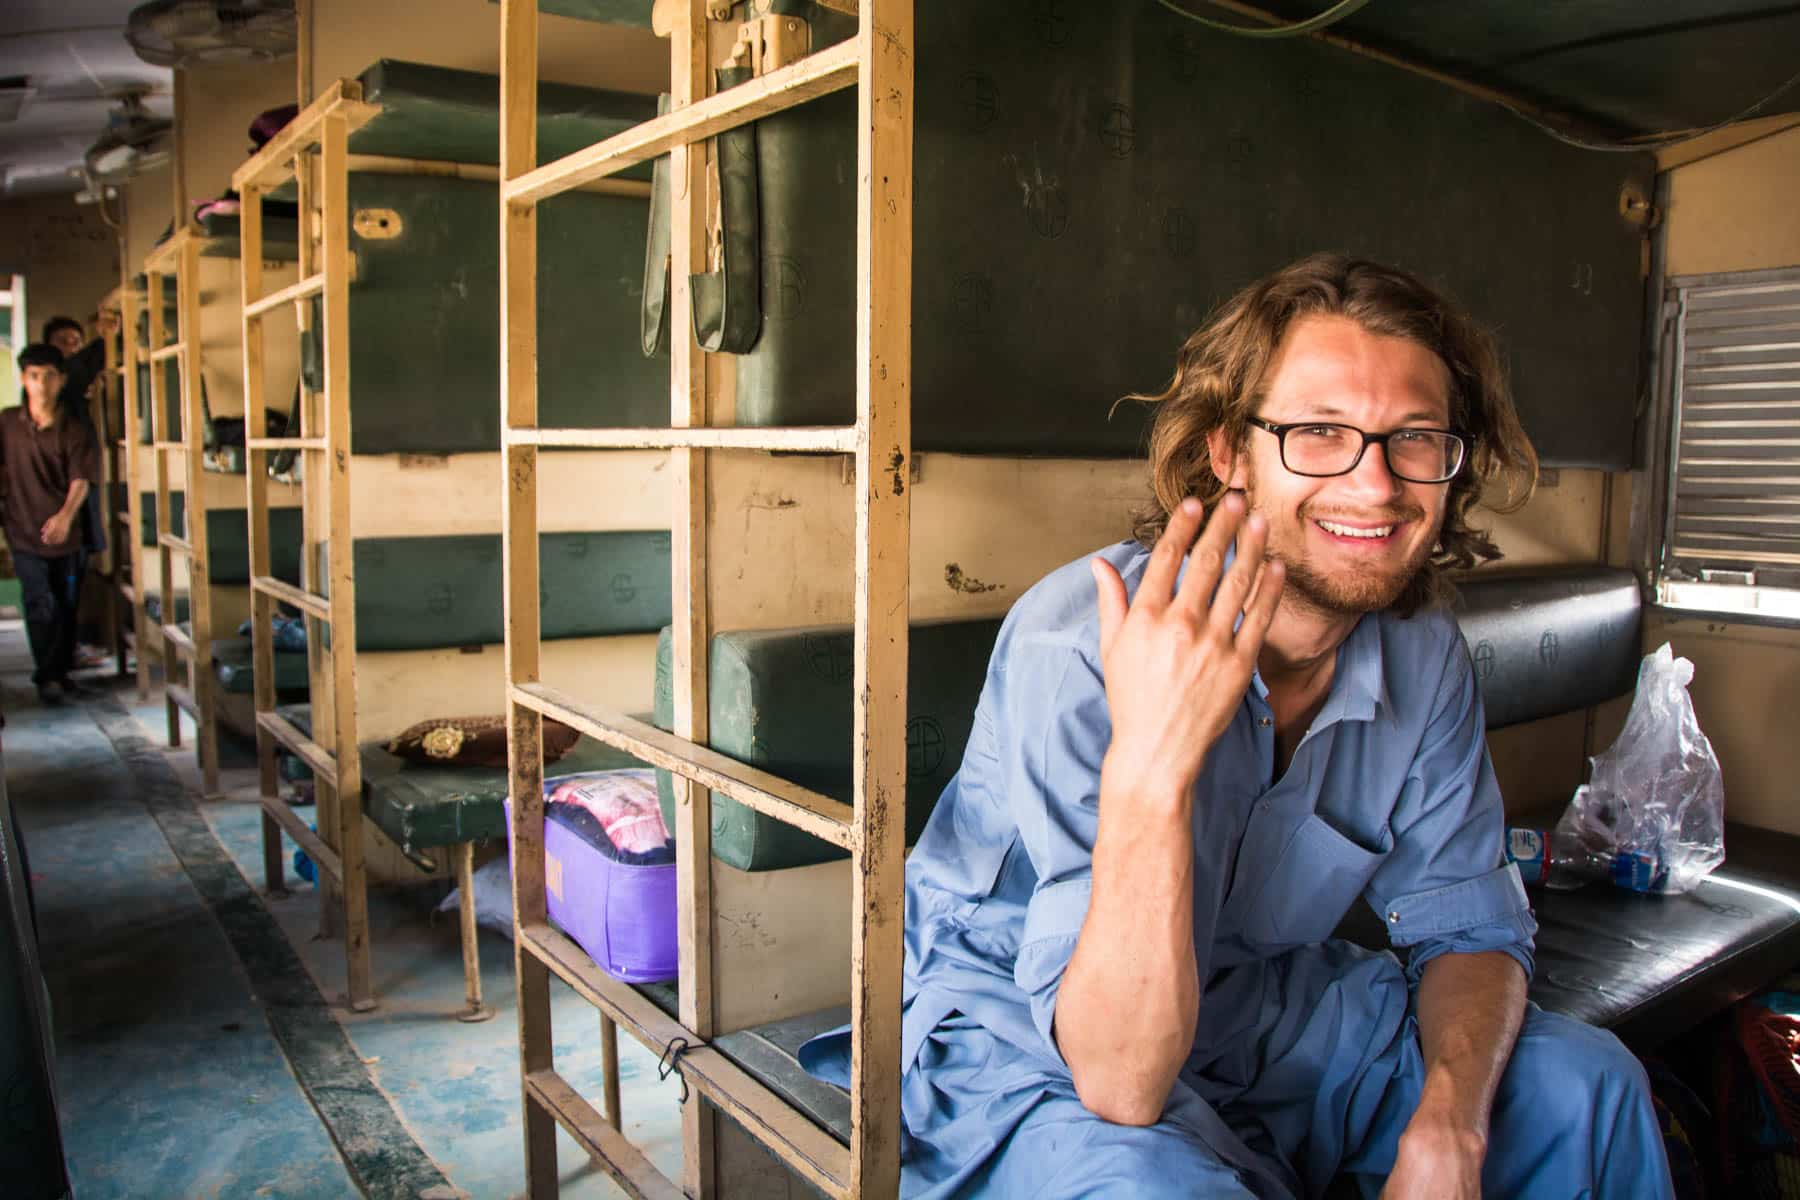 Guide to train travel in Pakistan - Melting in non-AC train class - Lost With Purpose travel blog